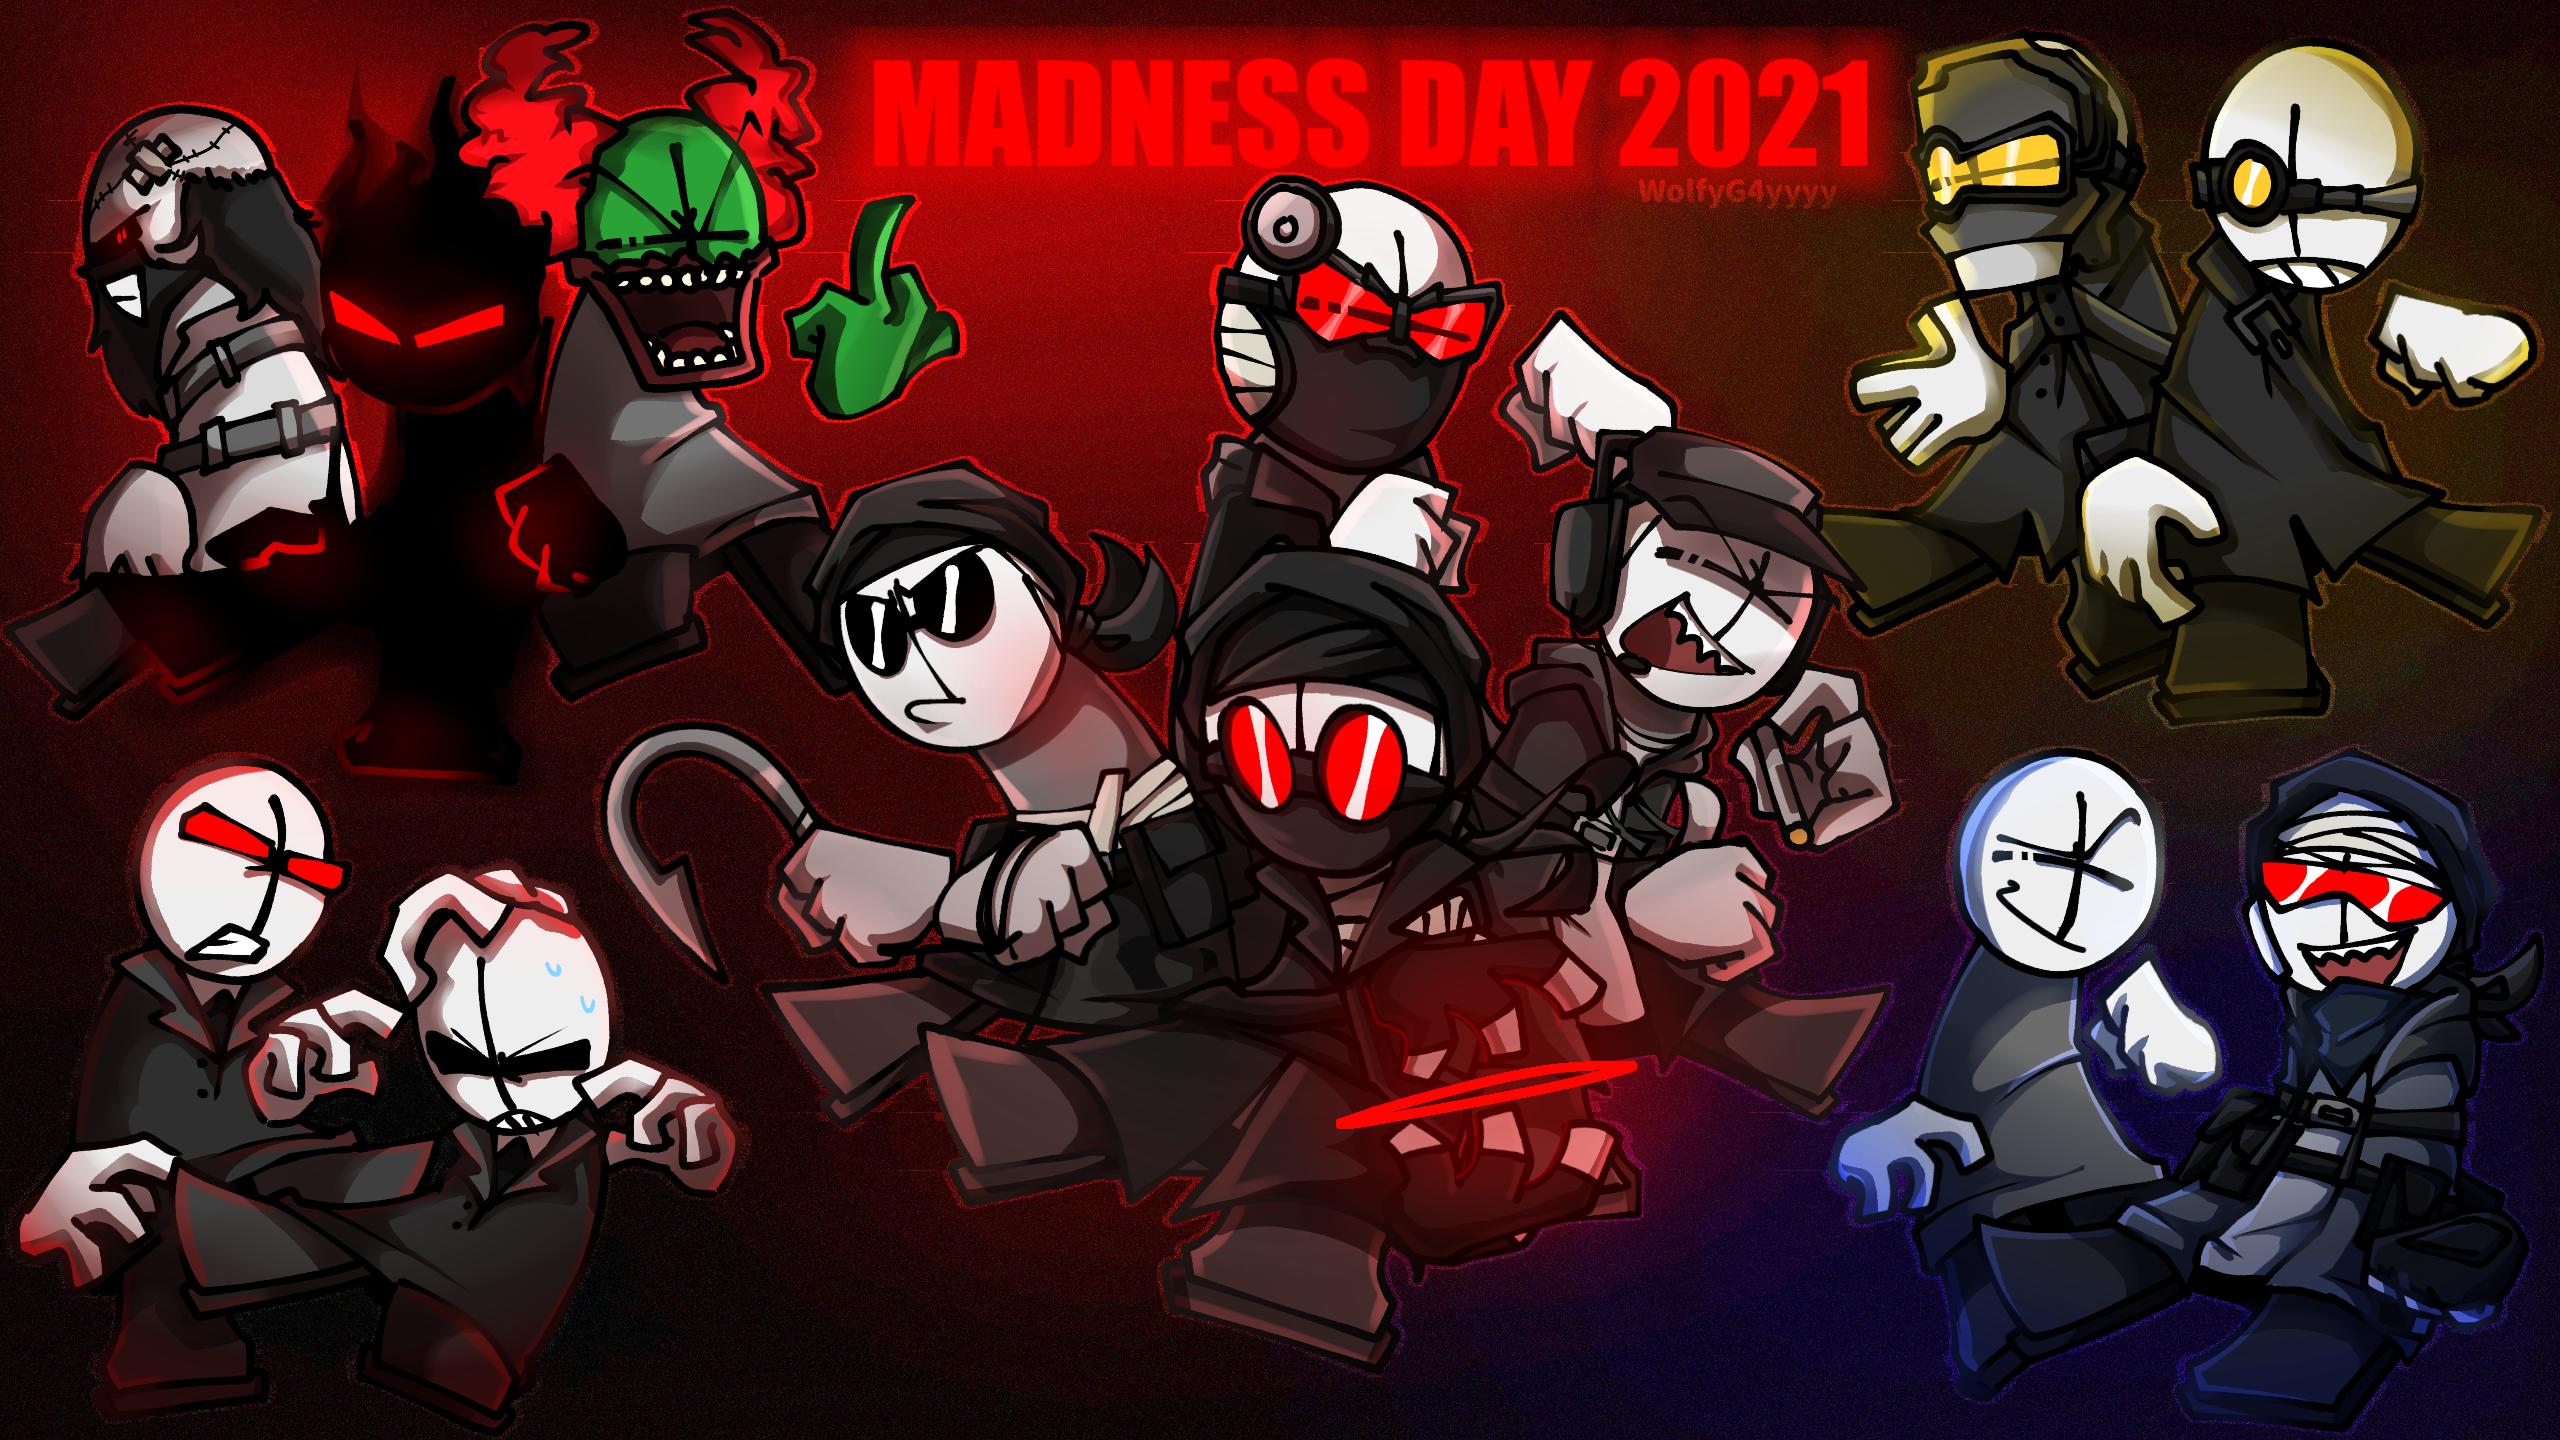 MADNESS DAY 2021